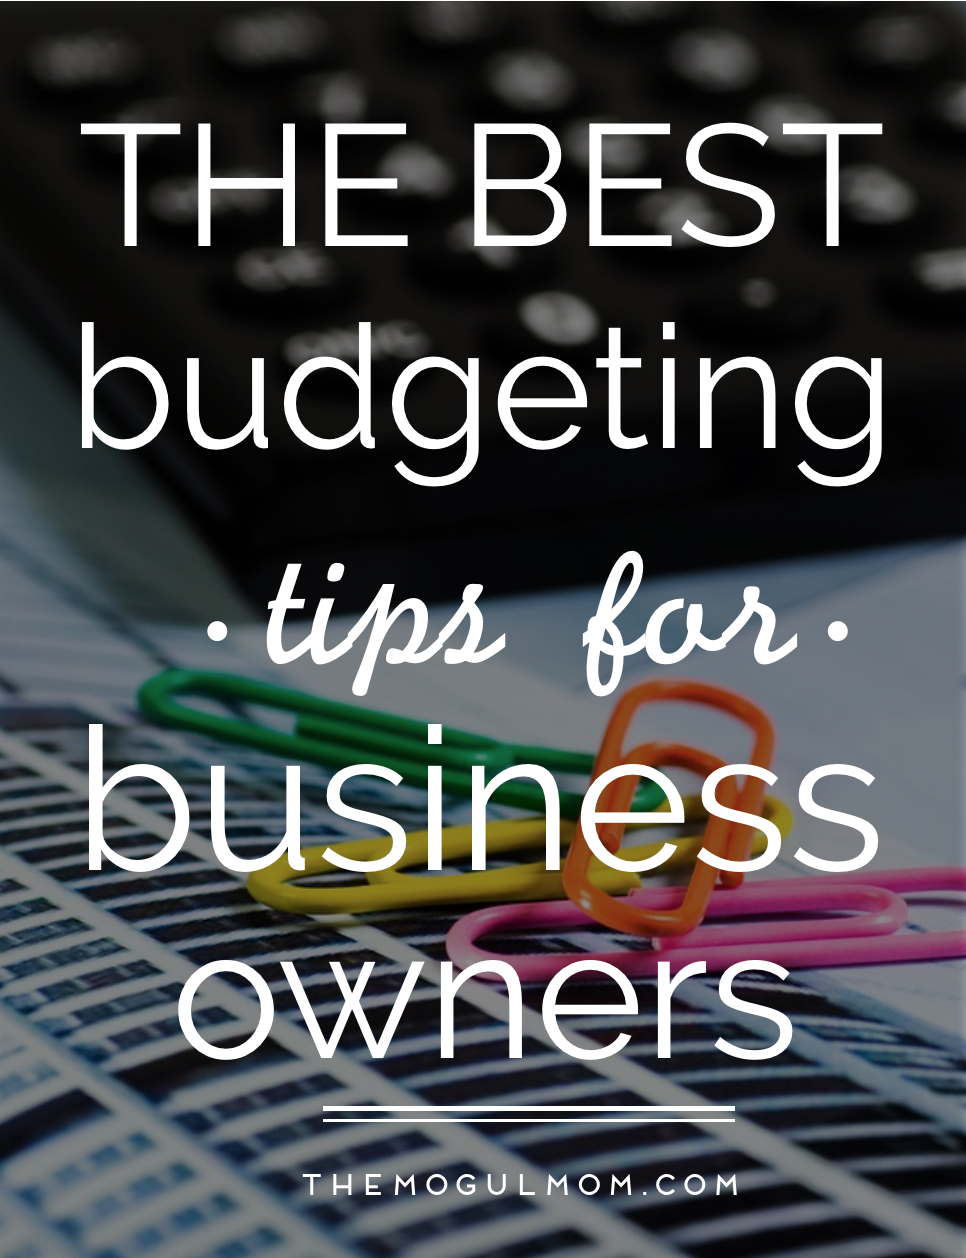 4 Best Budgeting Tips for Small Business Owners